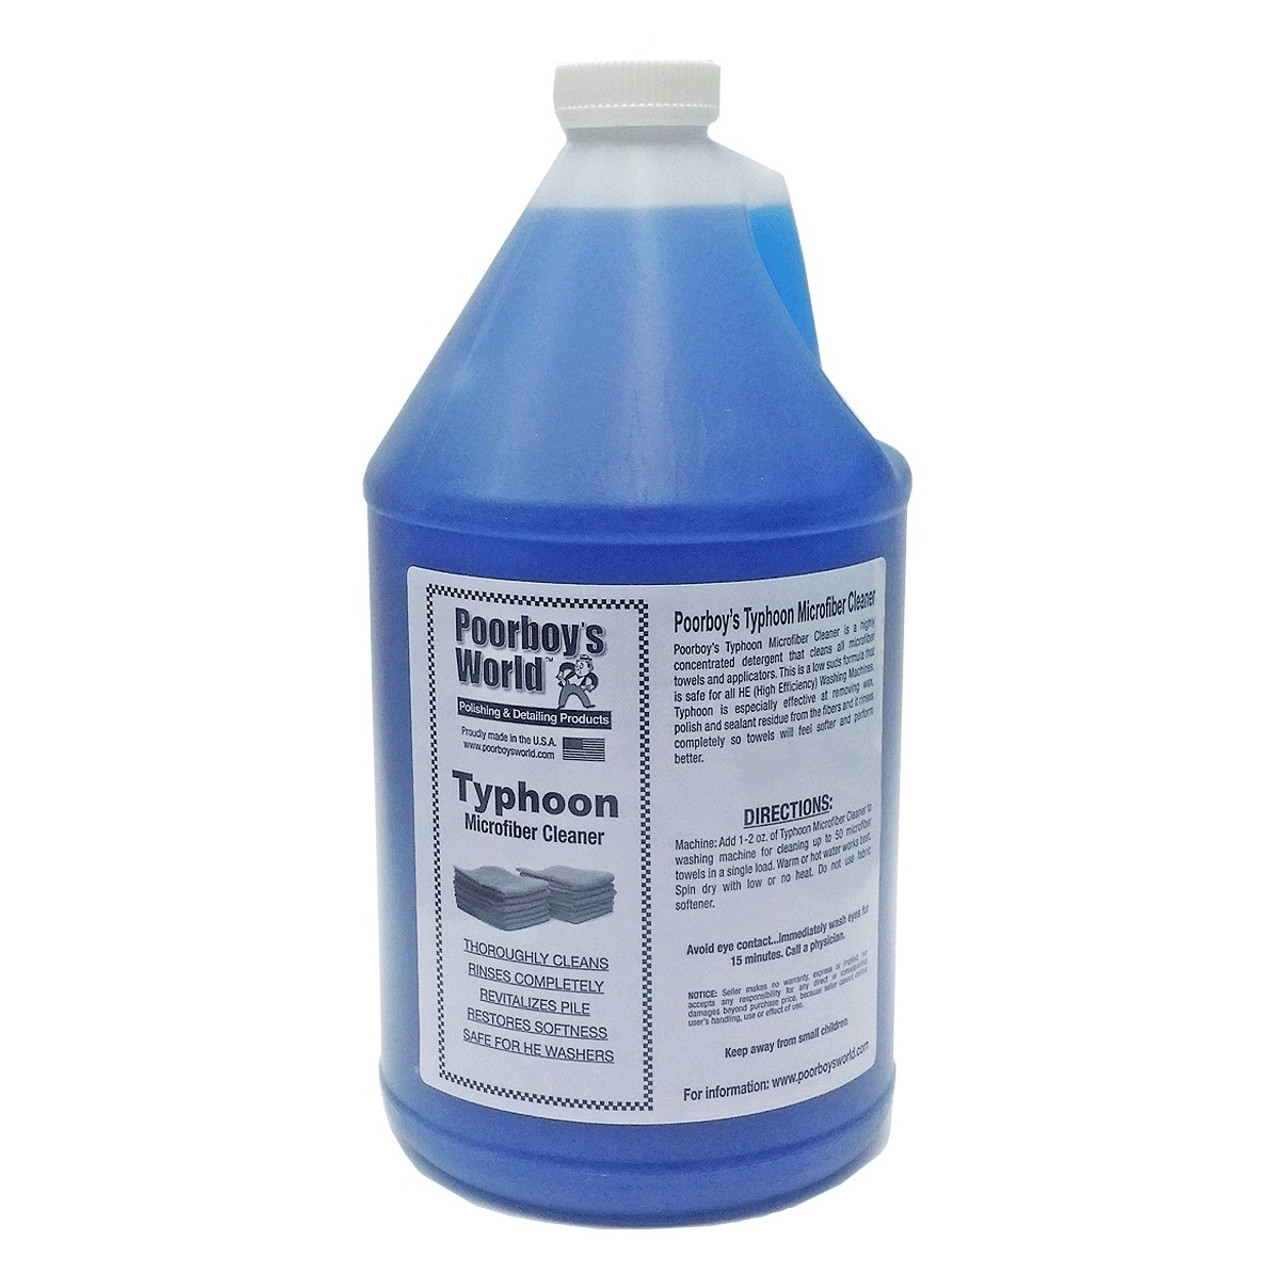 Poorboy's World Typhoon Microfiber Cleaner Gallon